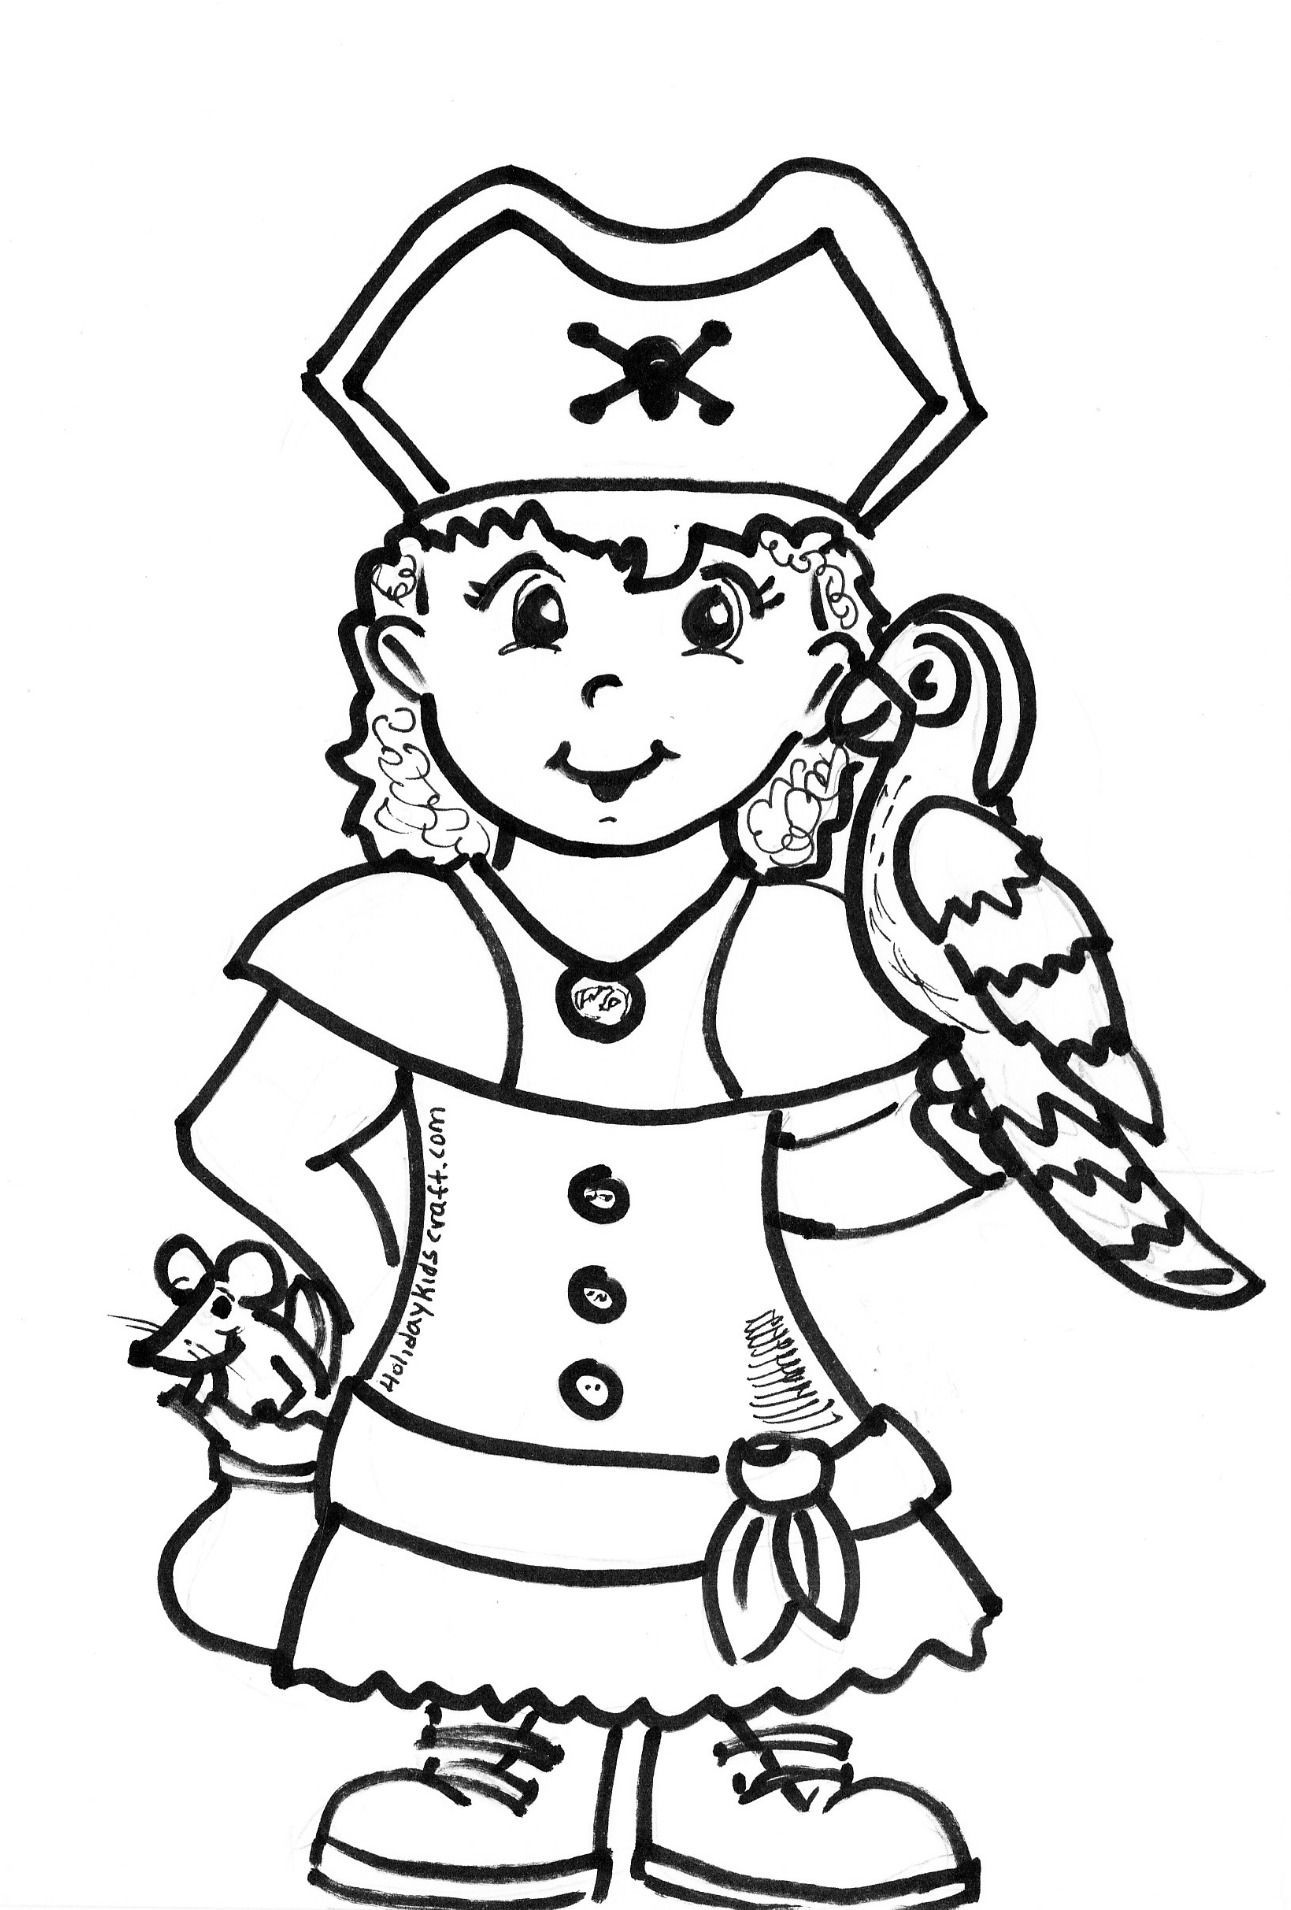 girl pirate coloring page | worksheets and coloring pages ... - Childrens Coloring Pages Girls